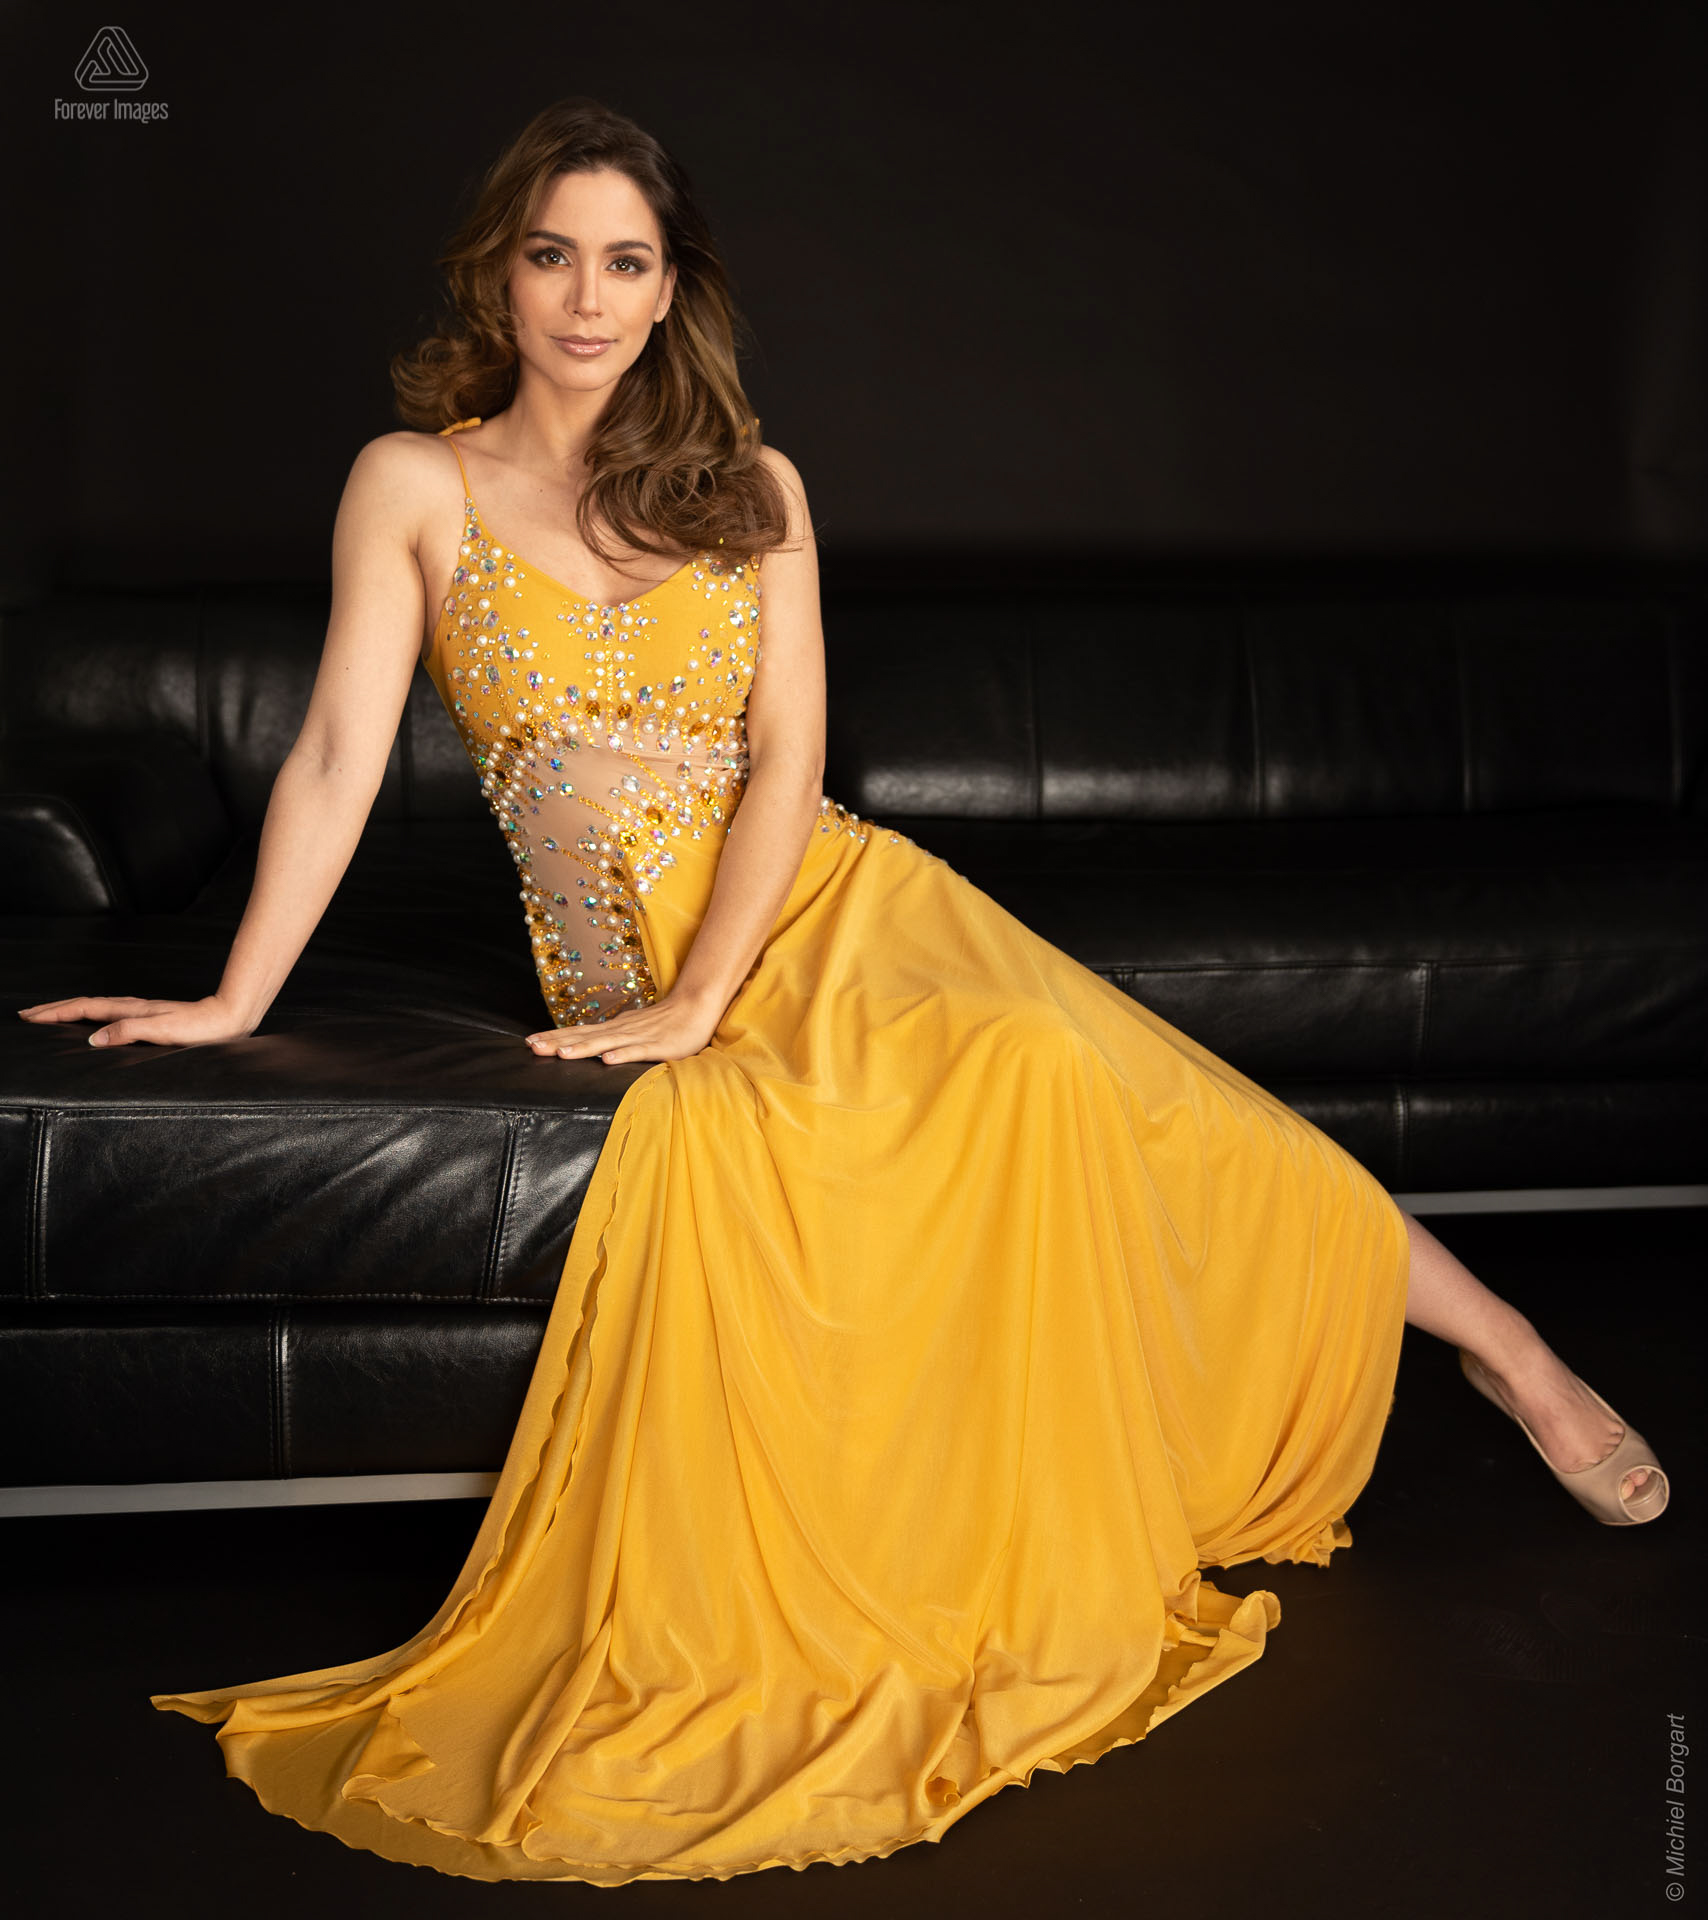 Fashion yellow dress leaning | Nathalie den Dekker Miss Universe World Netherlands International | Fashion Photographer Michiel Borgart - Forever Images.